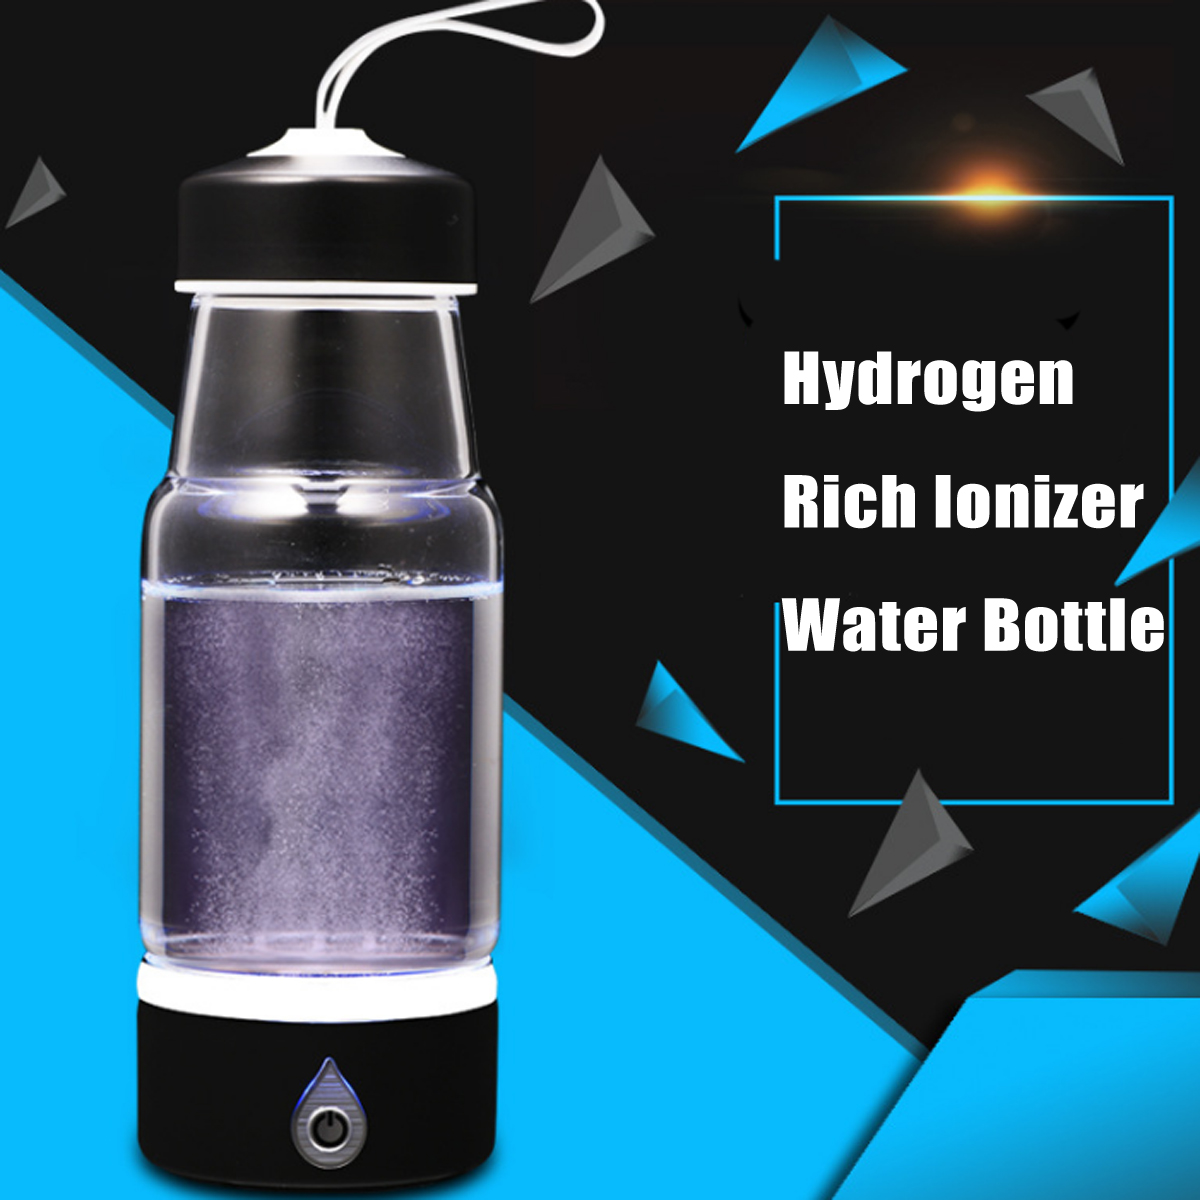 380ml USB Rechargeable Hydrogen Water Generator Intelligent Hydrogen Rich Water Bottles Alkaline Water Maker Portable Purifier new arrival hydrogen generator hydrogen rich water machine hydrogen generating maker water filters ionizer 2 0l 100 240v 5w hot